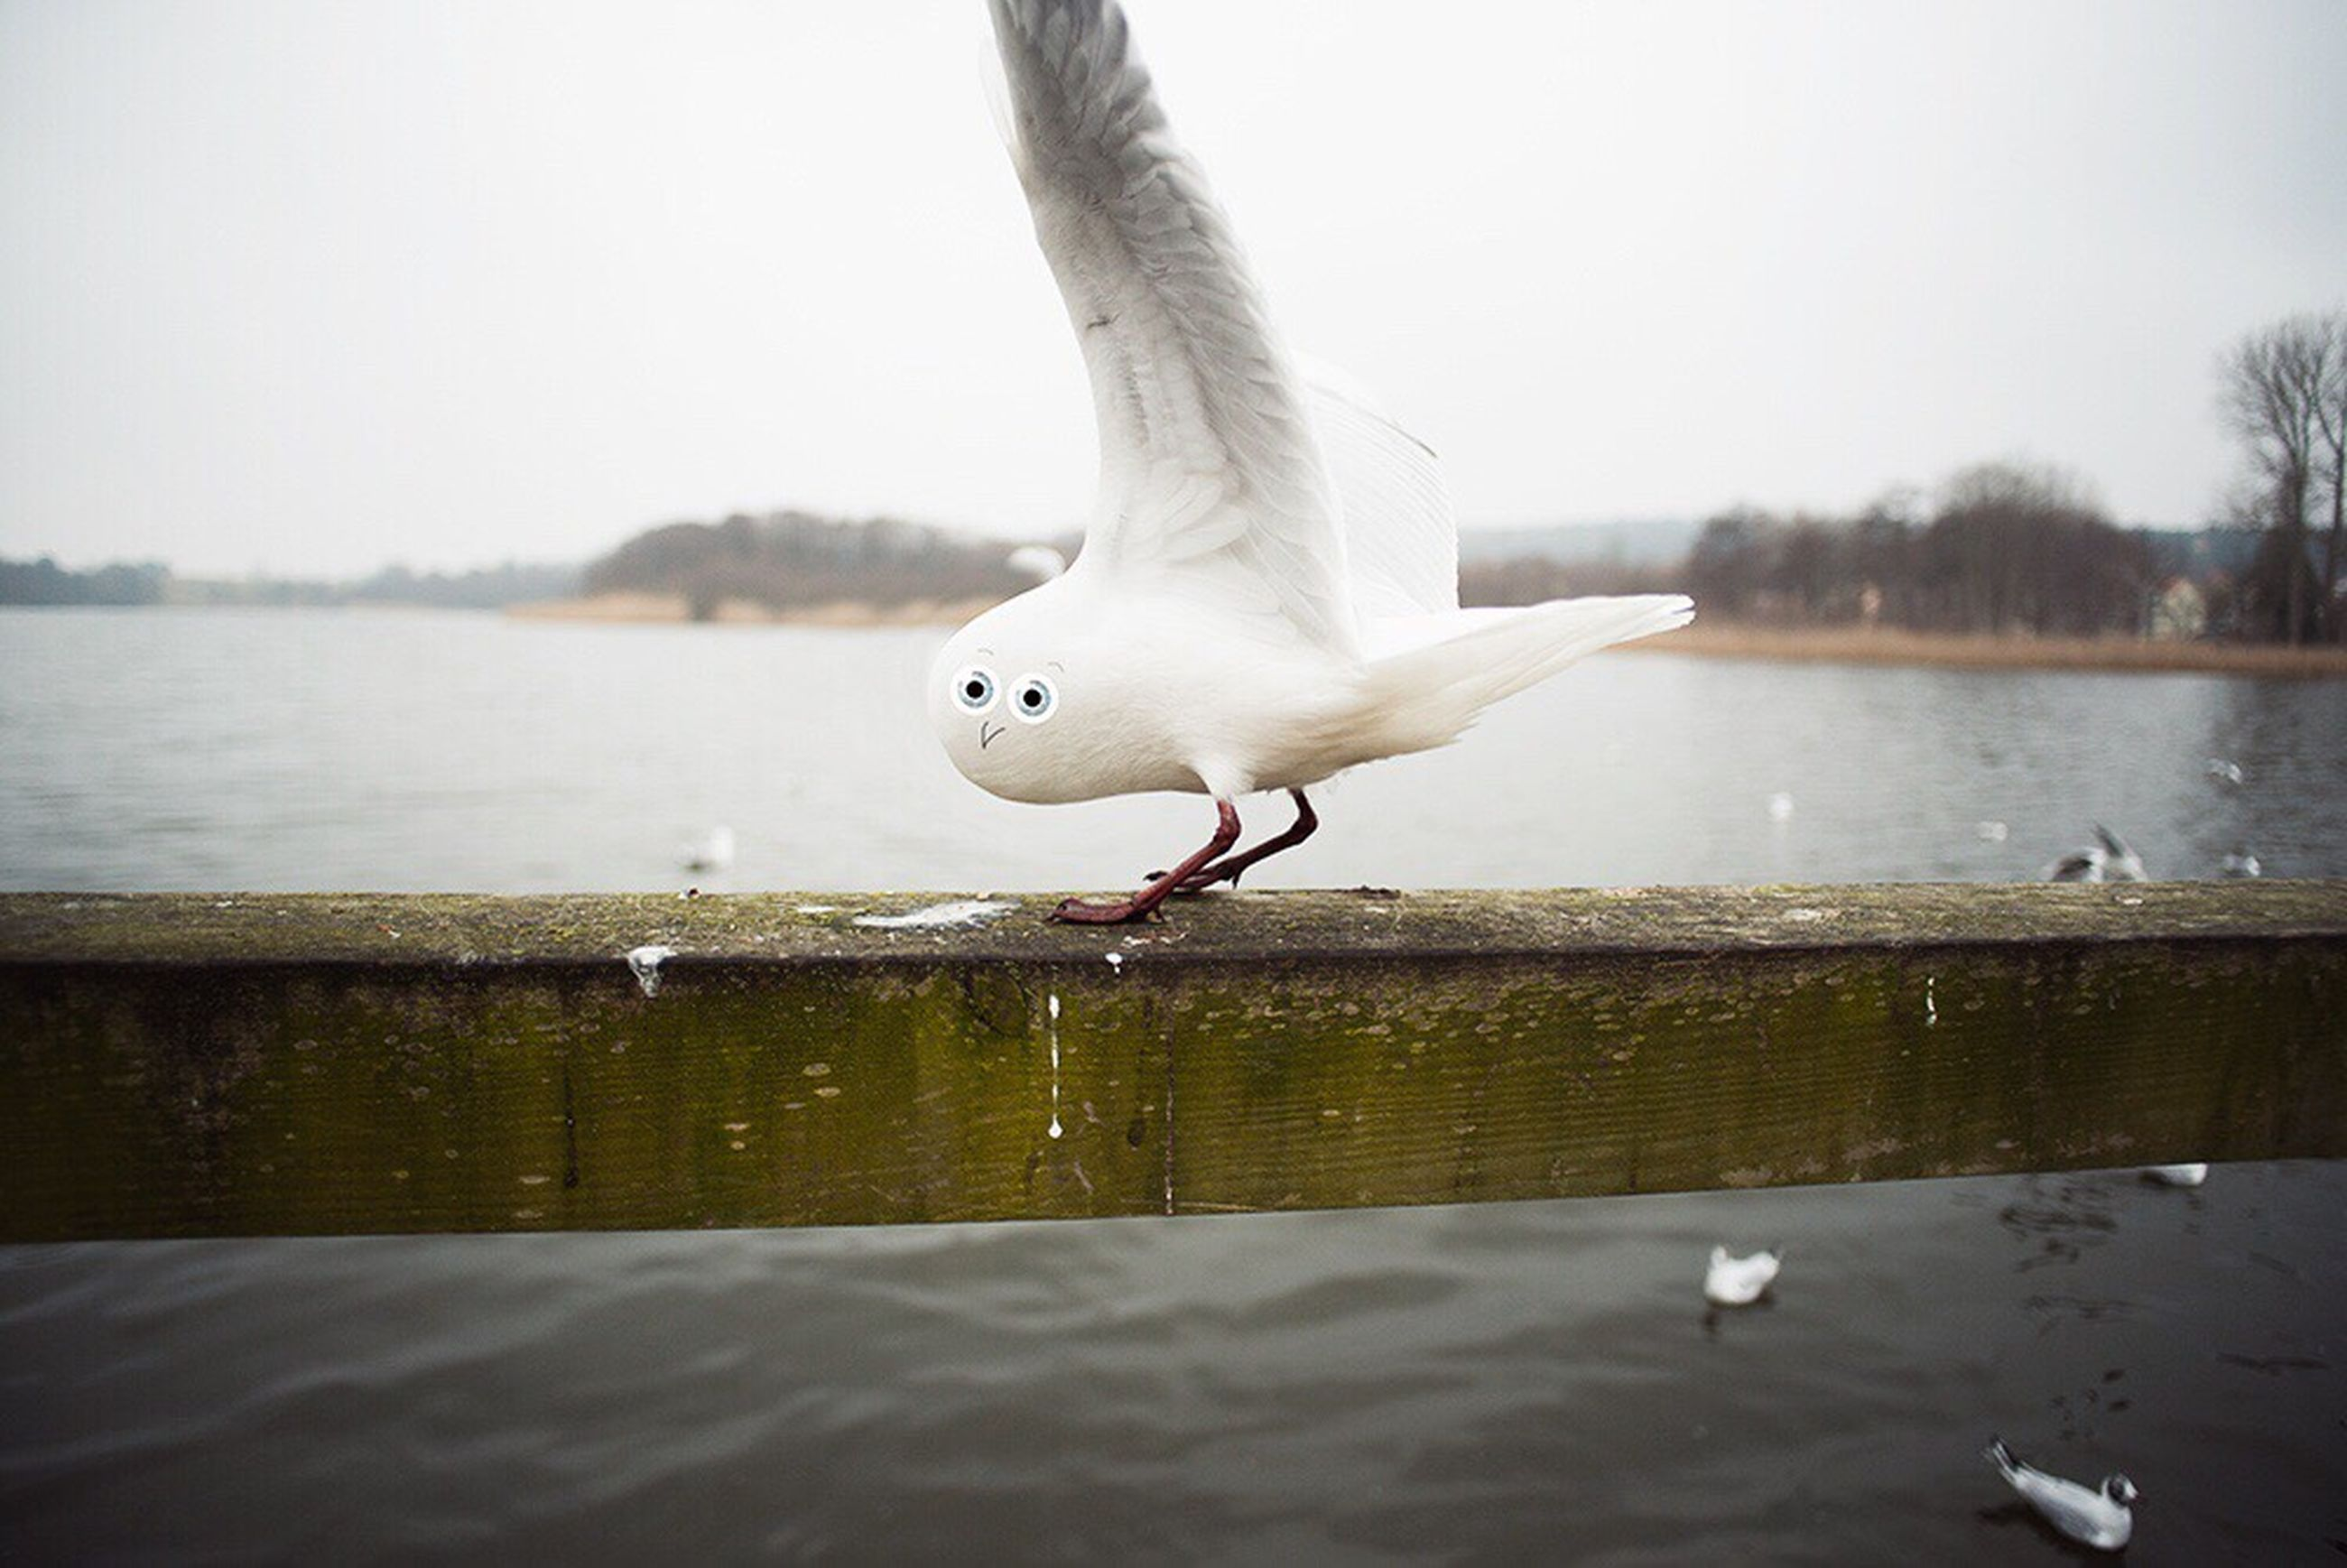 bird, animal themes, water, animals in the wild, wildlife, seagull, one animal, spread wings, flying, lake, swan, white color, nature, waterfront, clear sky, side view, river, water bird, reflection, day